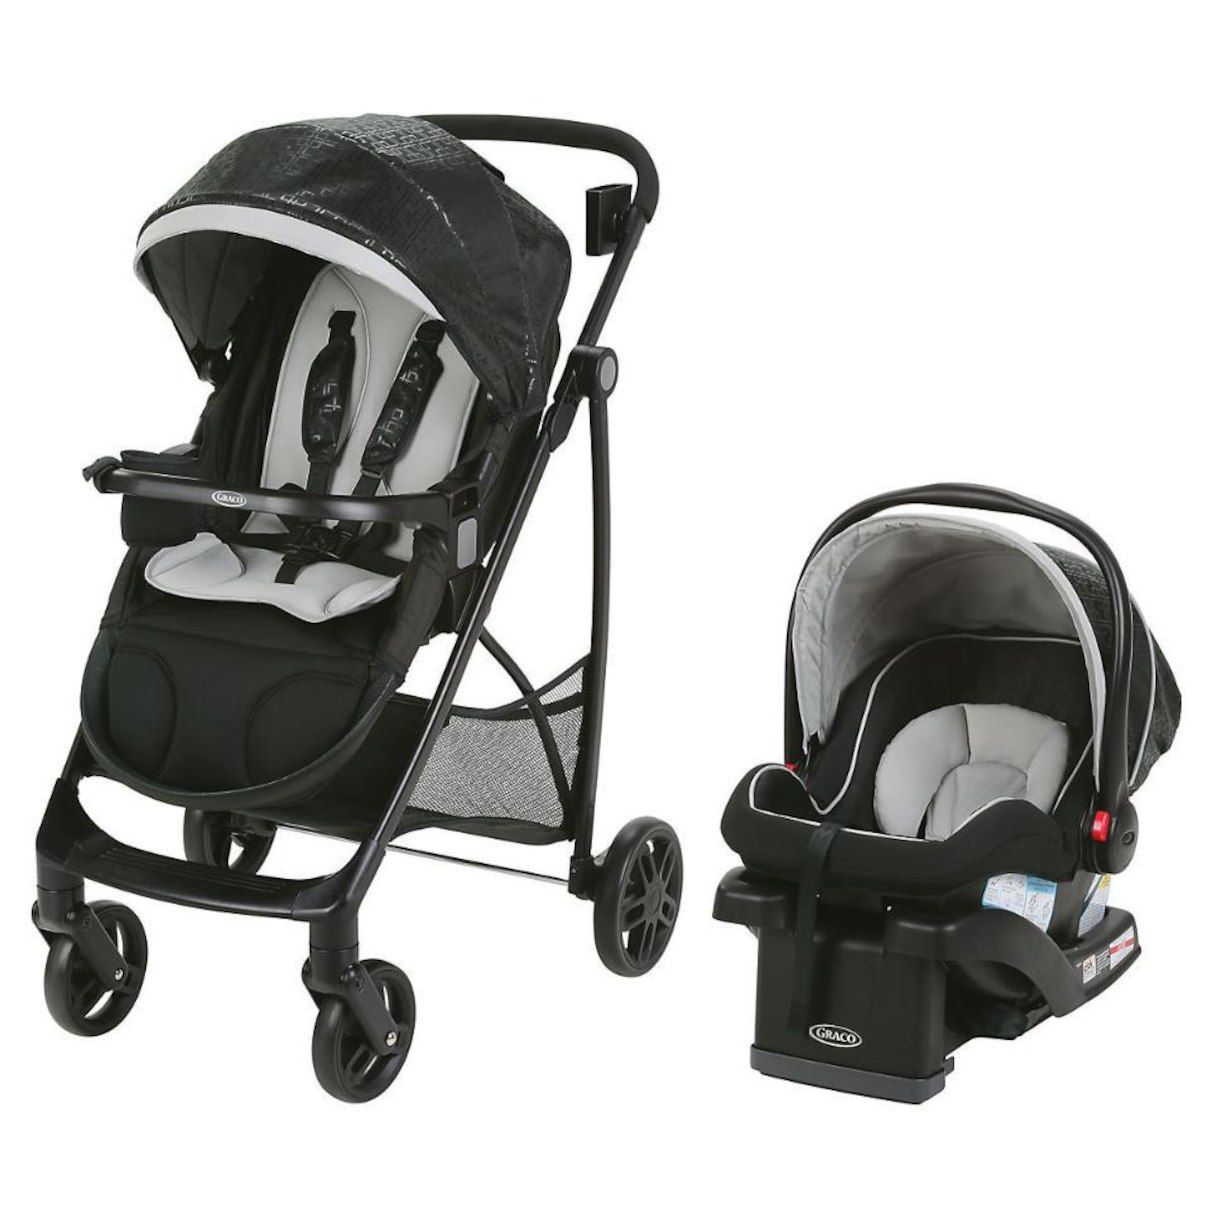 Graco Views Stroller Travel System with SnugRide 35 LX ...